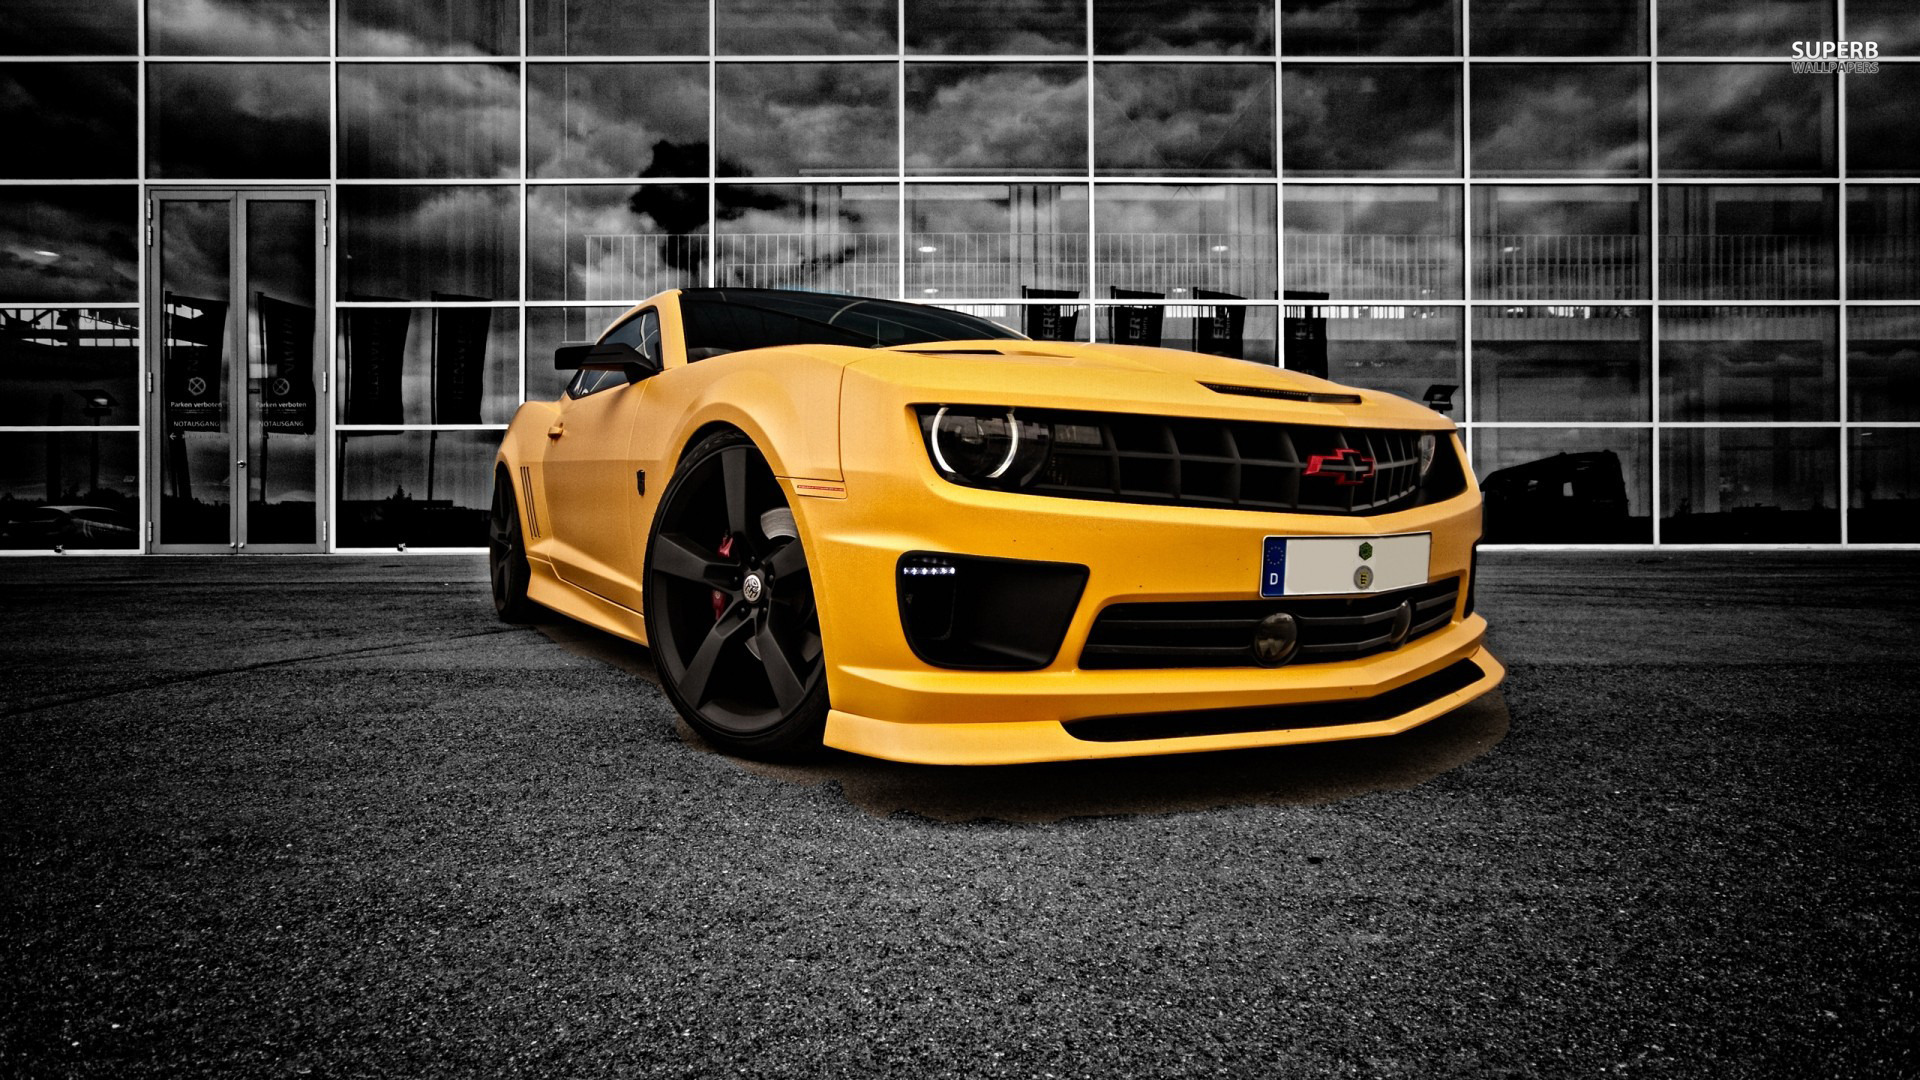 camaro 2016 wallpaper wallpapersafari